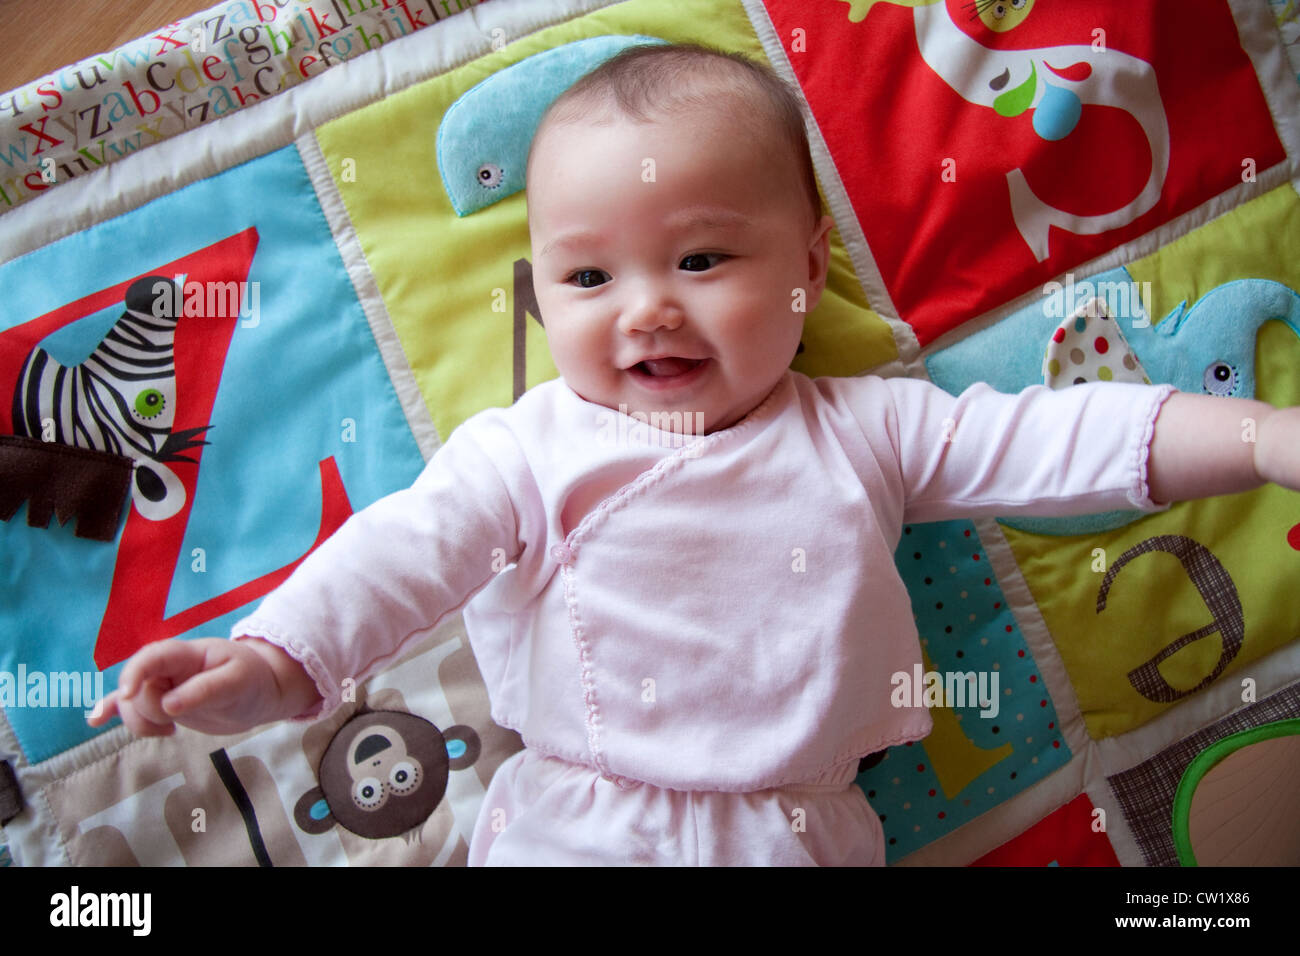 Happy baby on colorful playmat Stock Photo